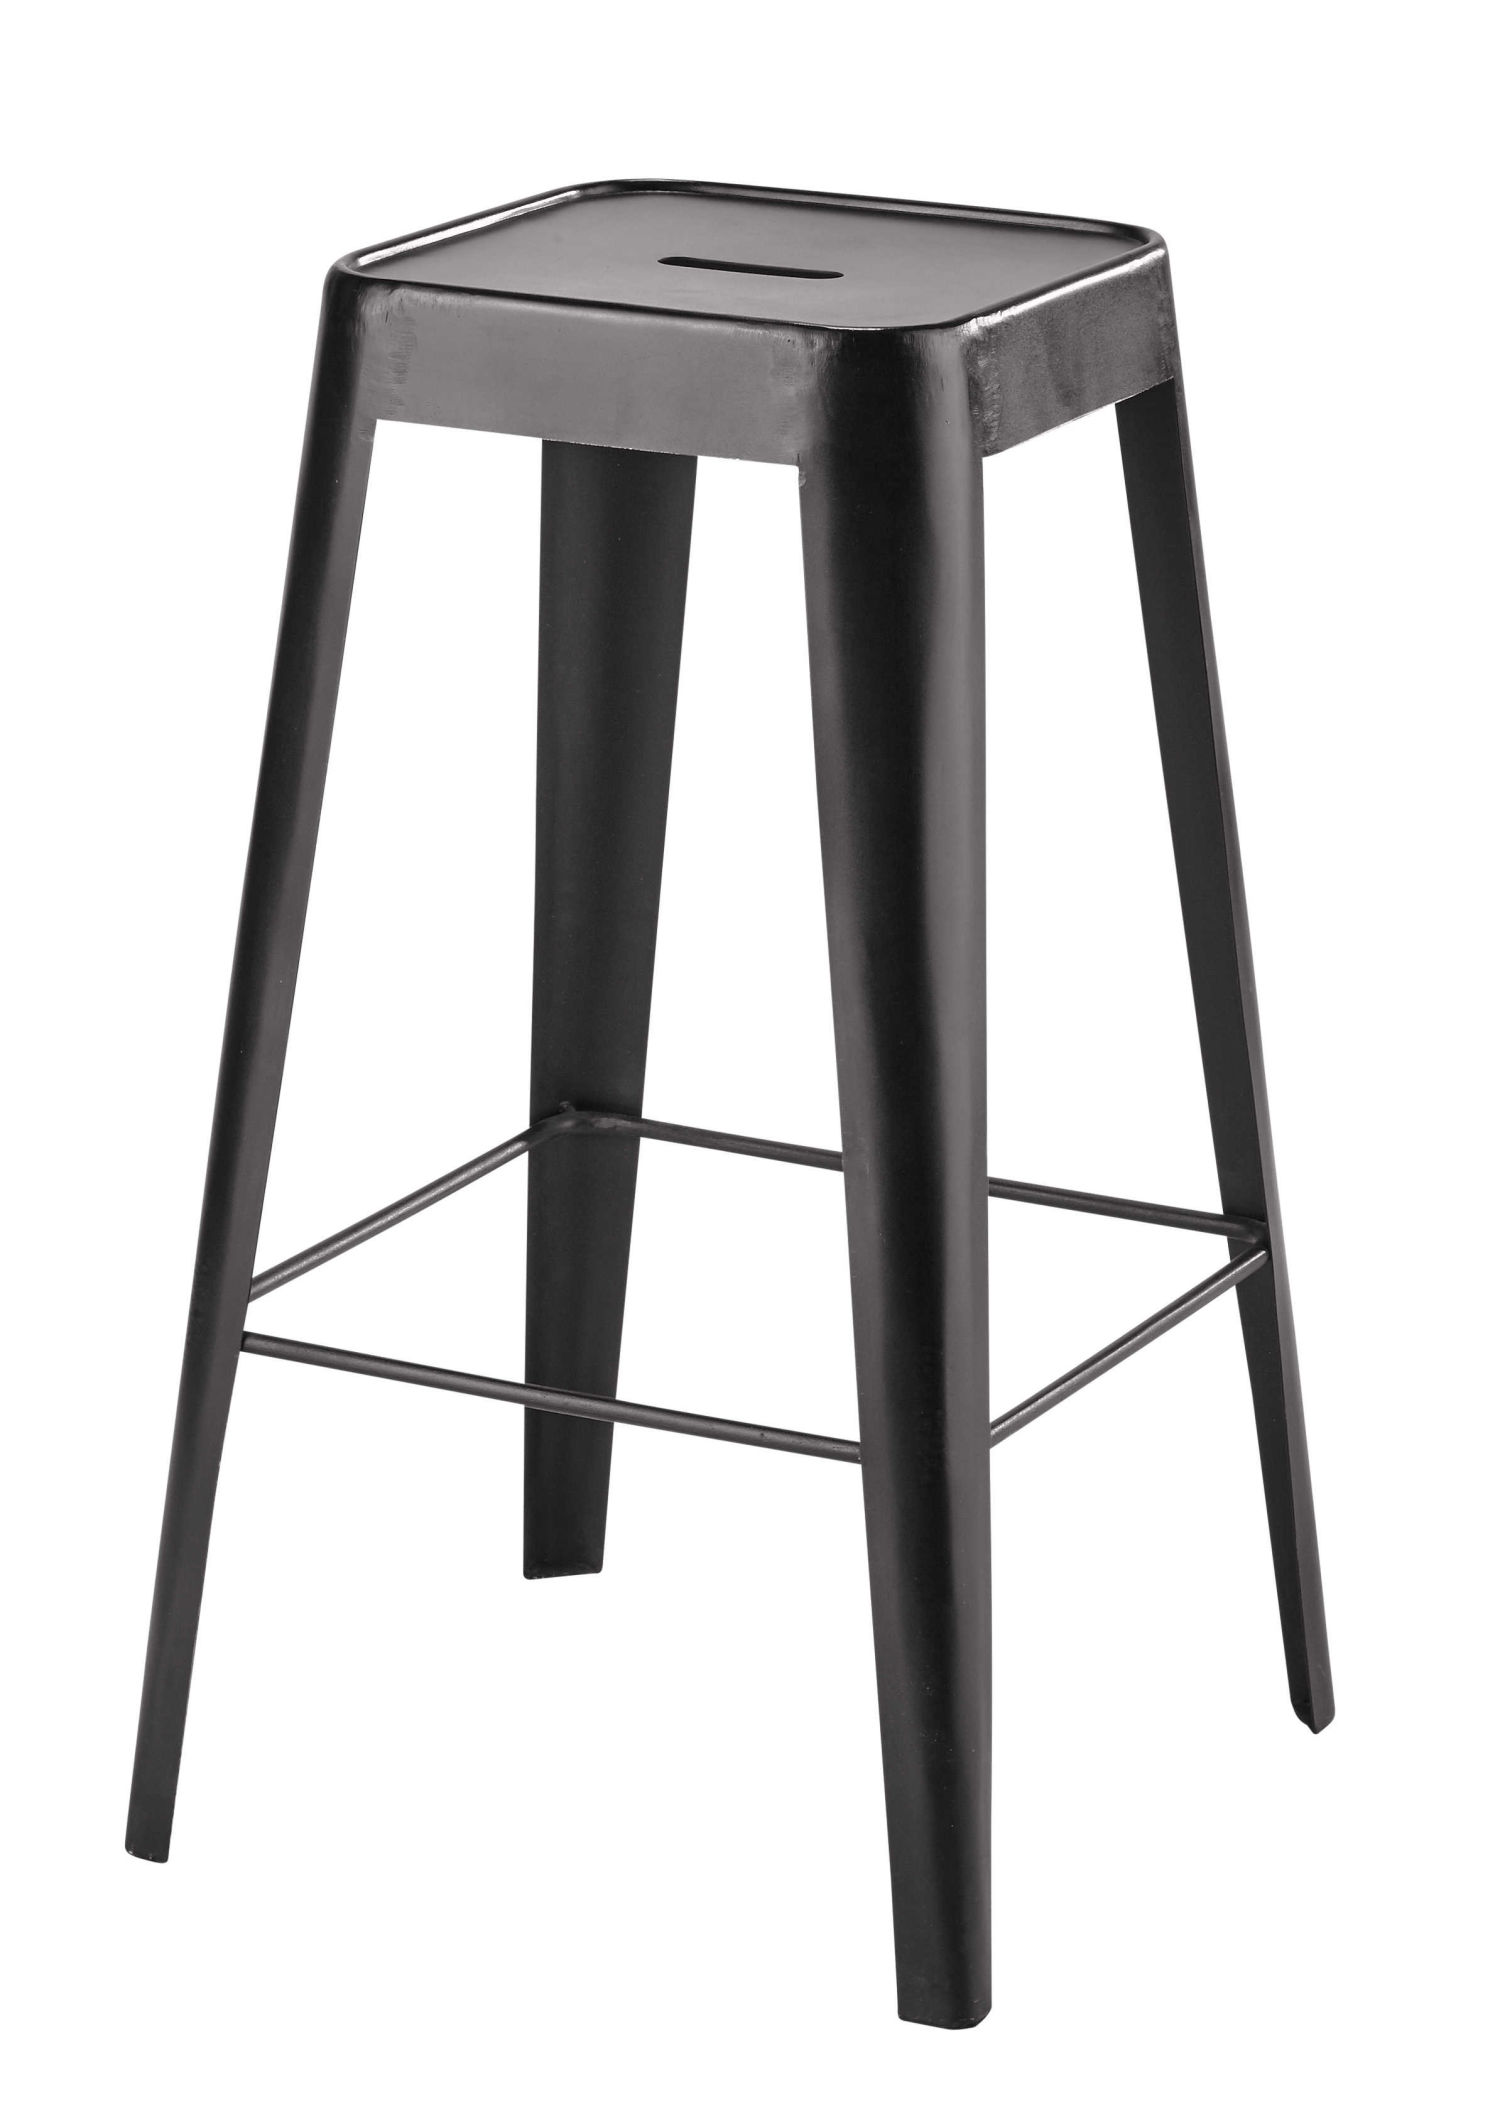 metal bar stool in black maisons du monde. Black Bedroom Furniture Sets. Home Design Ideas